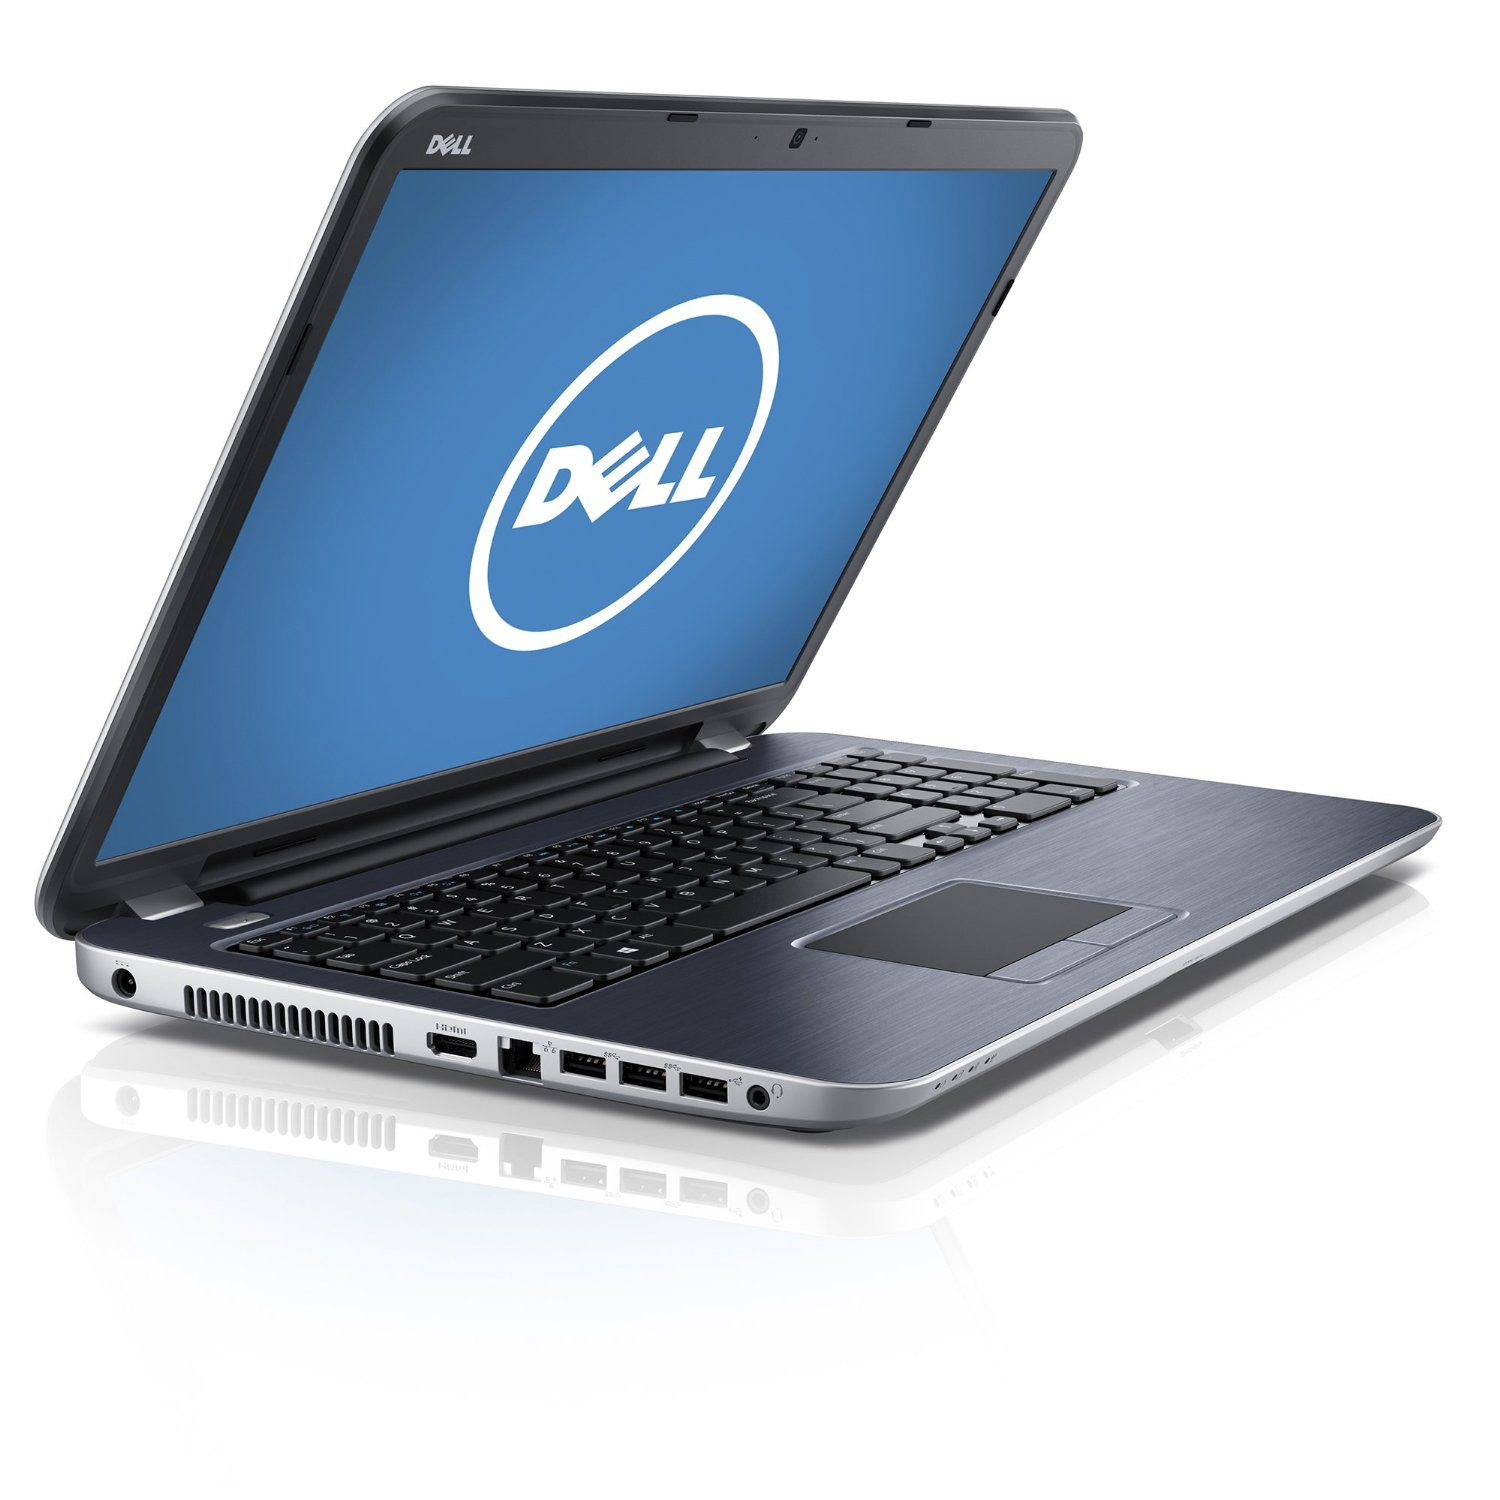 dell inspiron 17r 8gb 1tb 17 3 intel dual core i5 4200u w8 1 laptop w webcam ebay. Black Bedroom Furniture Sets. Home Design Ideas